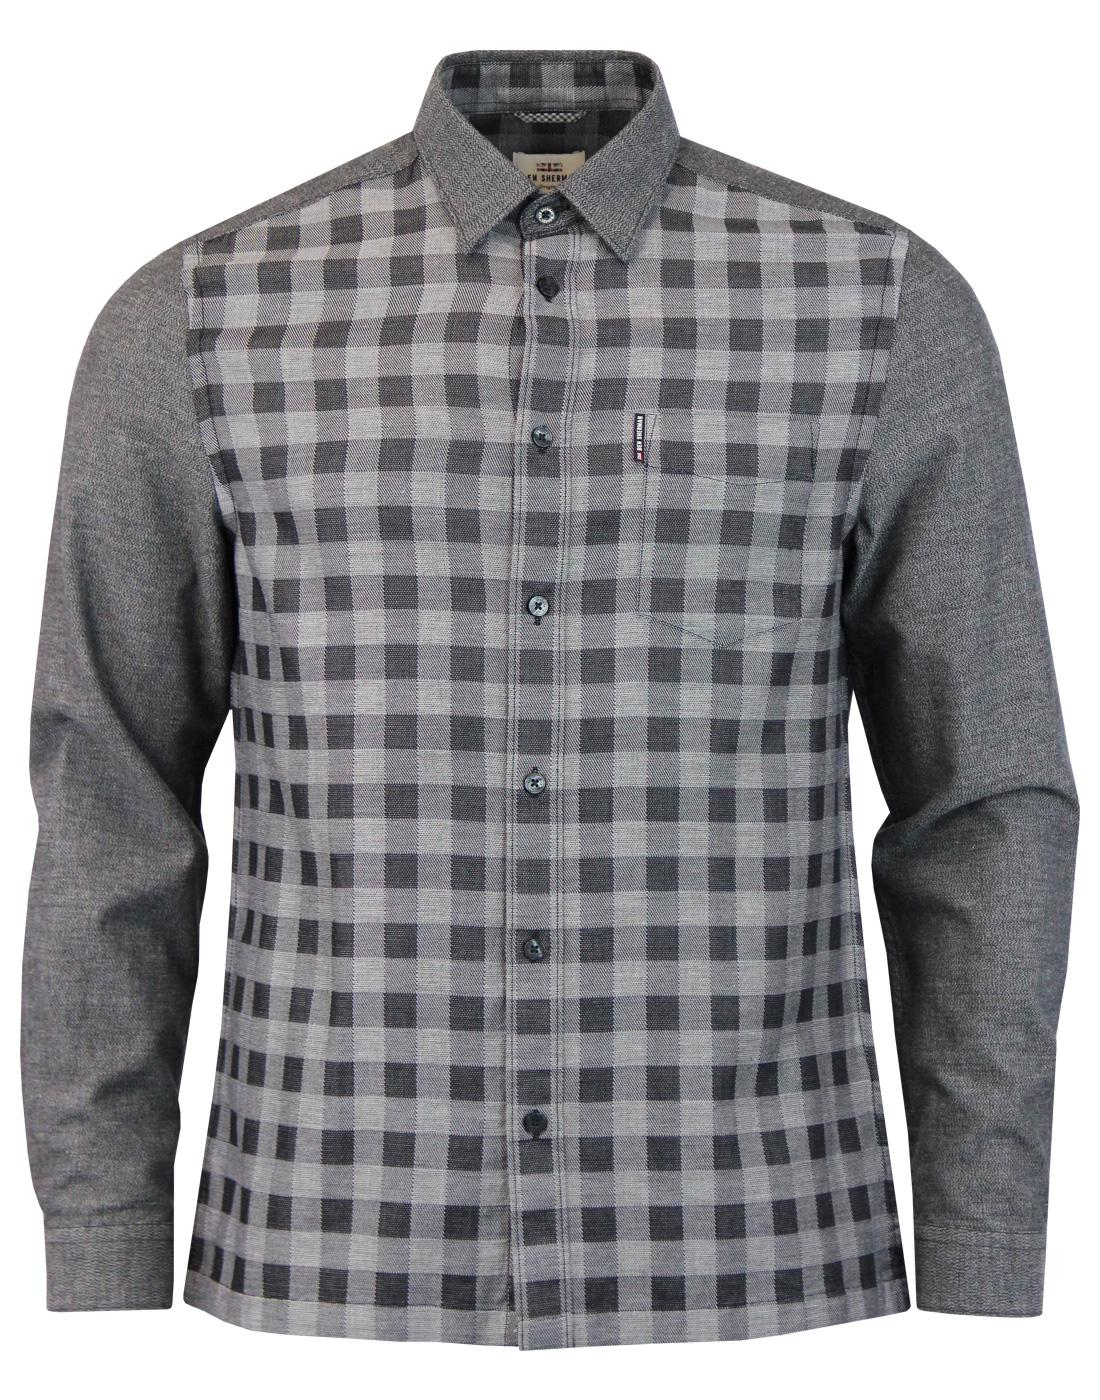 BEN SHERMAN Mens Retro Mod Check Front Dobby Shirt